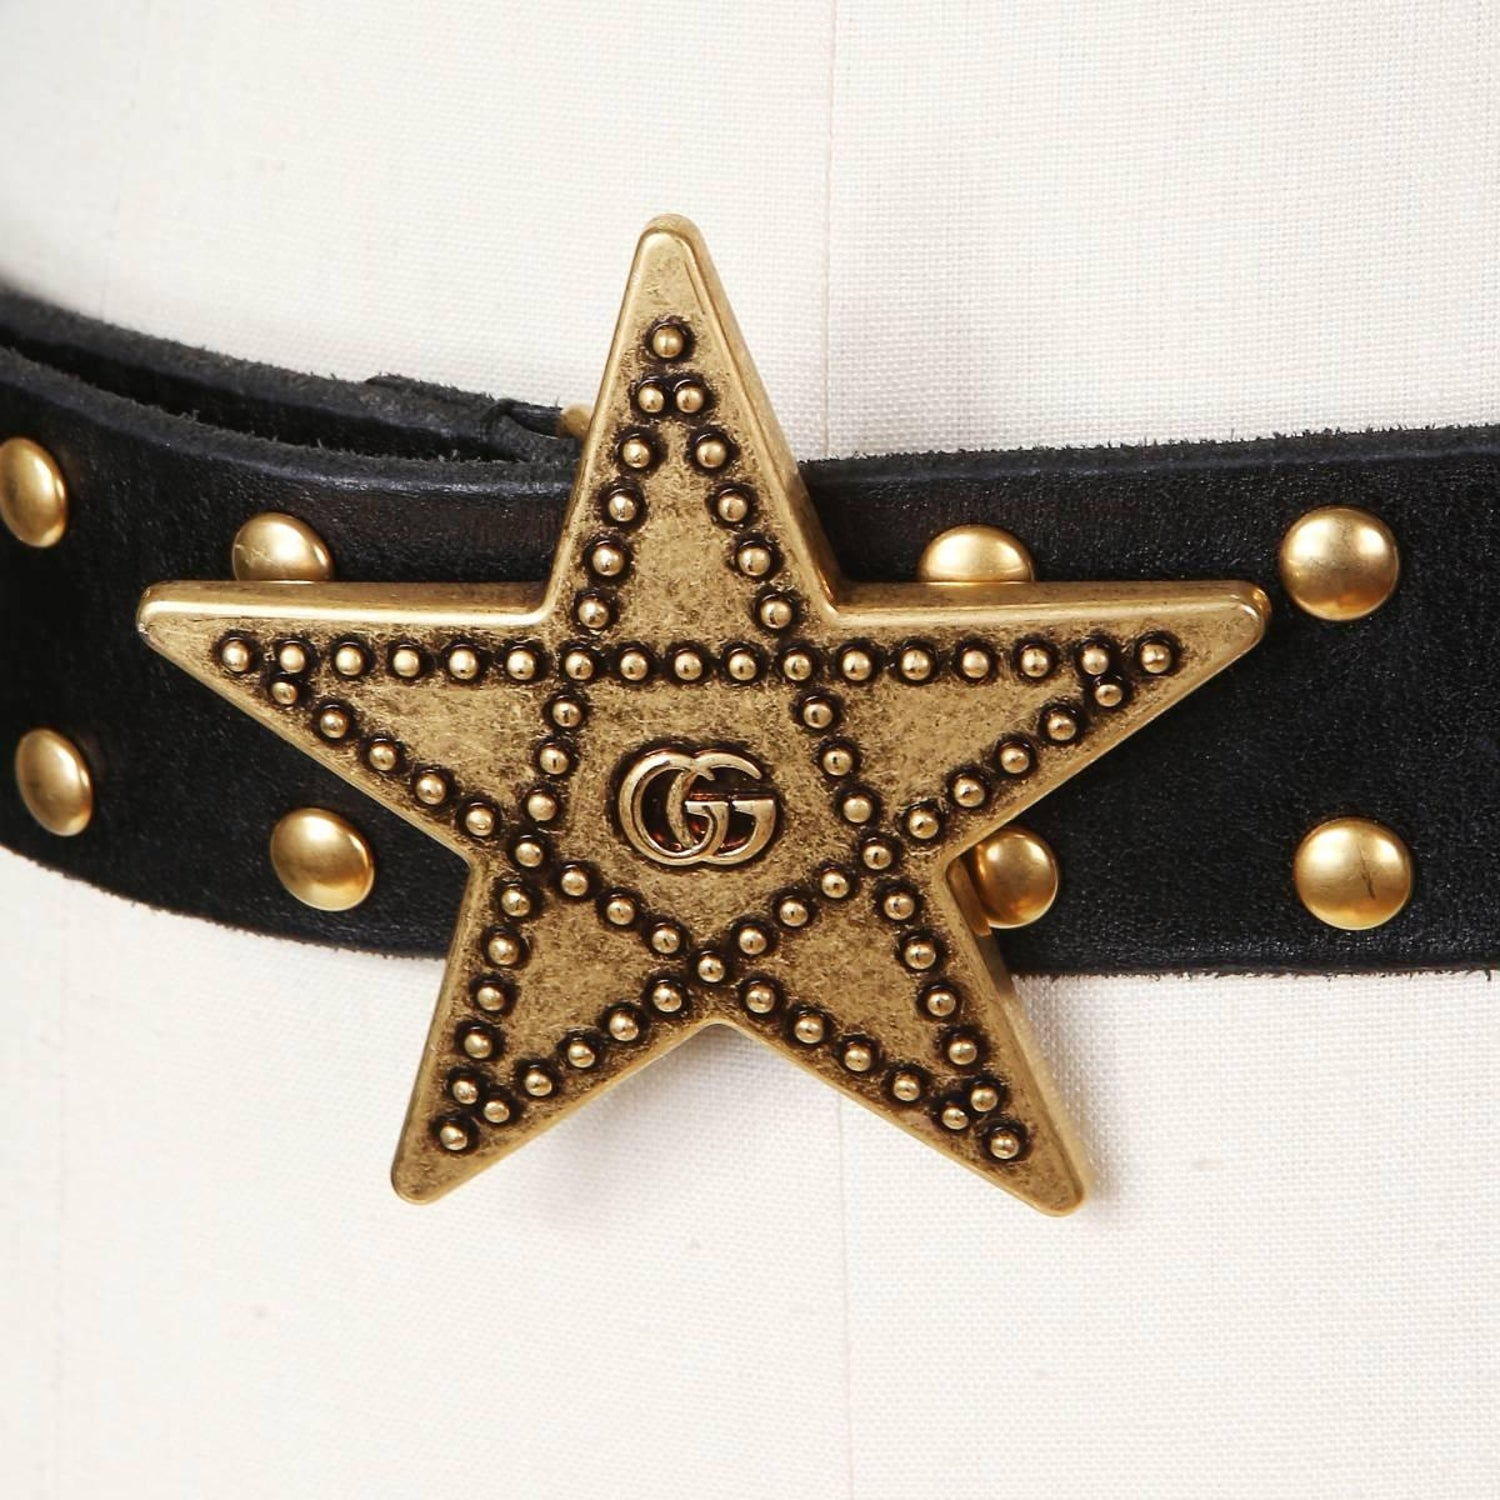 37ed9c94b07 Gucci Star Buckle Sherriff s Black Leather Belt with GG and Studs ...